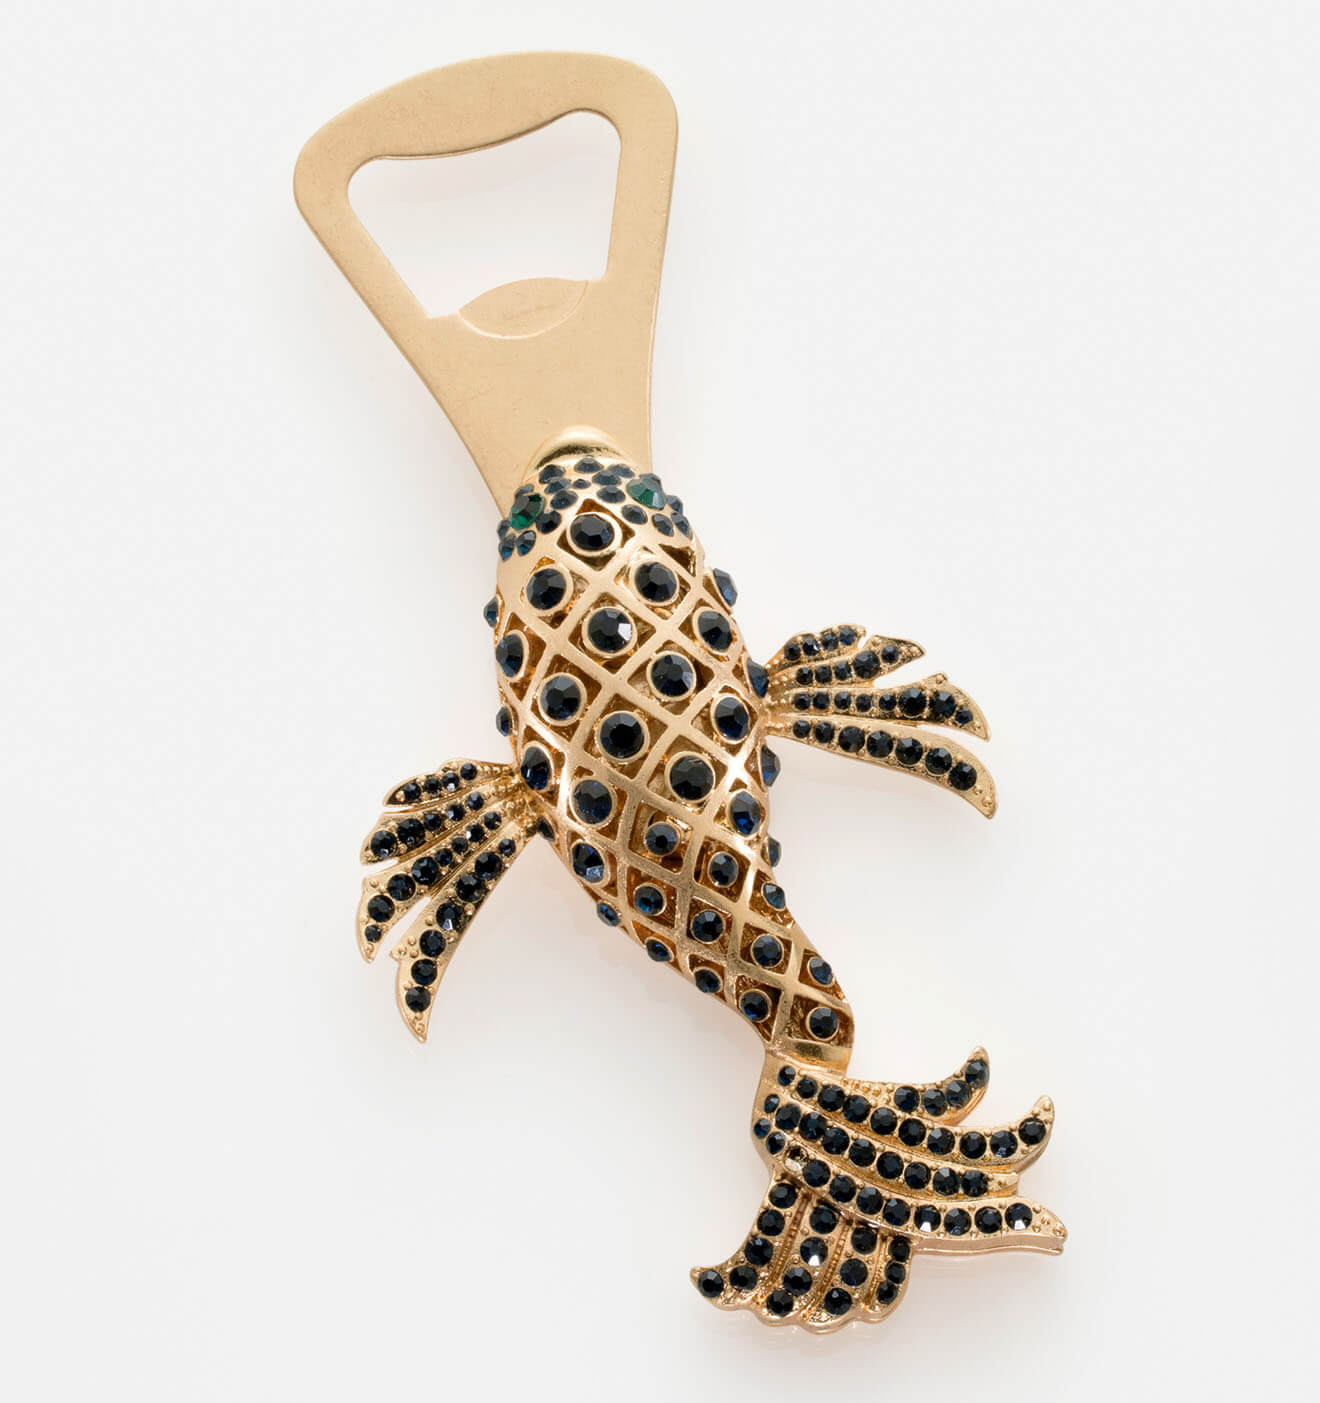 Koi Bottle Opener